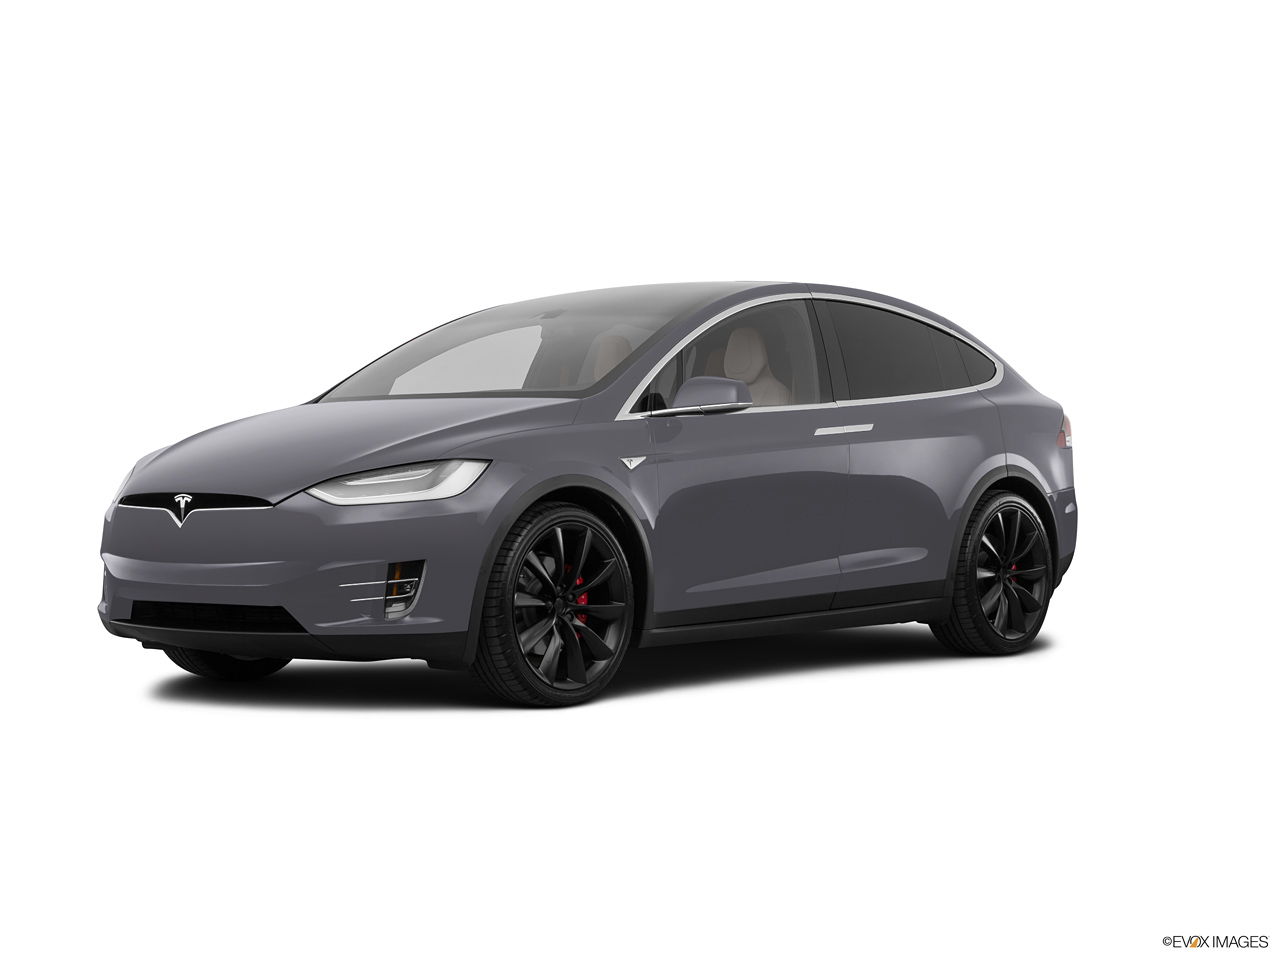 car pictures list for tesla model x 2018 100d uae yallamotor. Black Bedroom Furniture Sets. Home Design Ideas